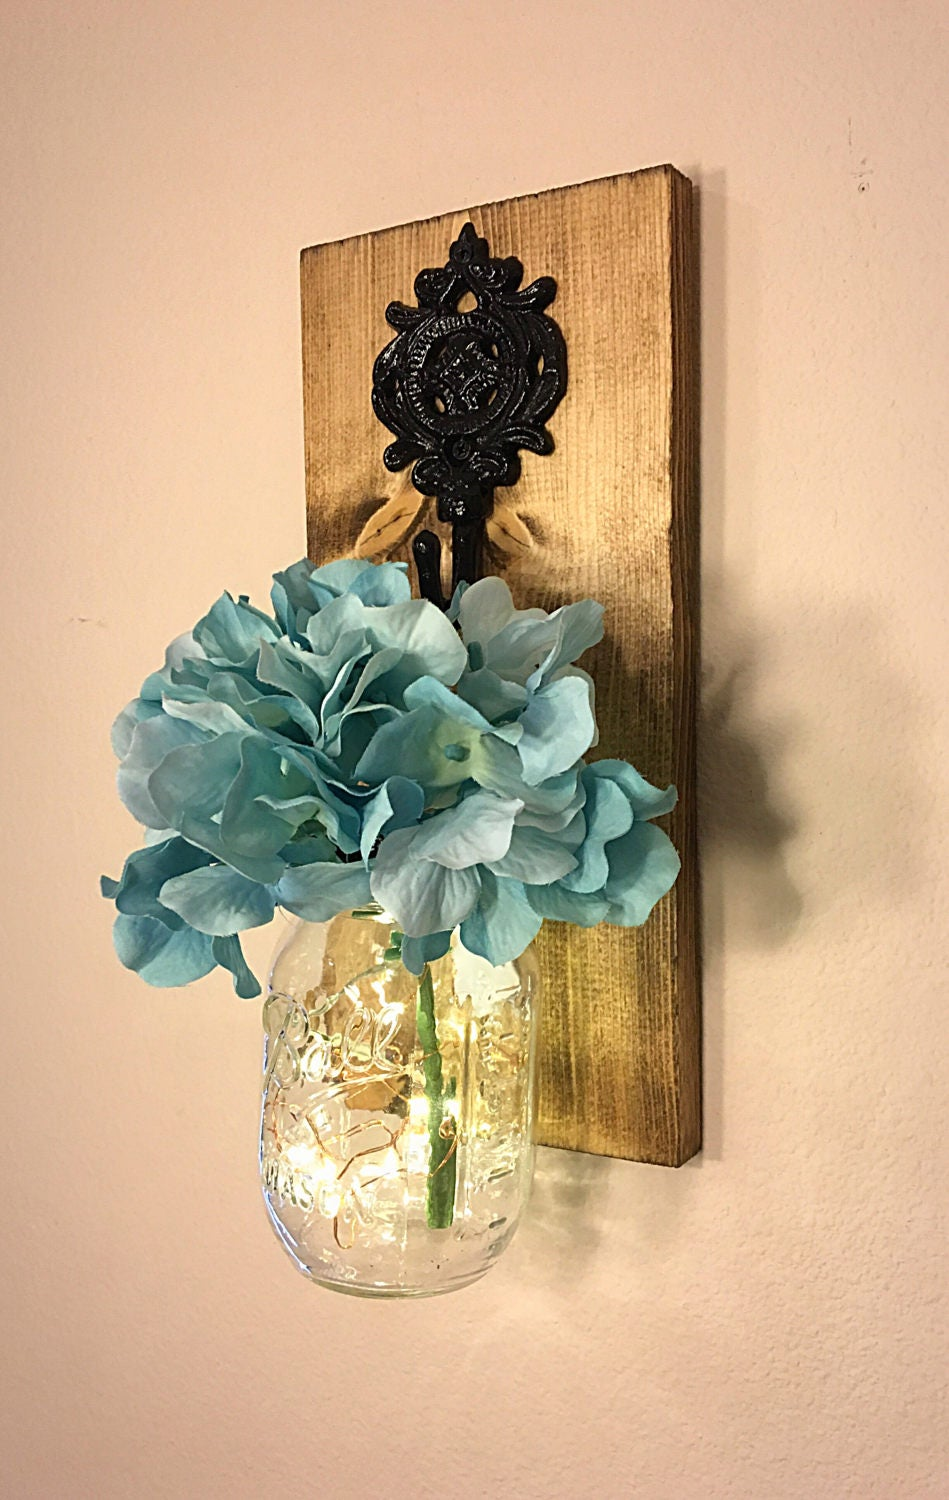 Mason Jar Wall Decor How To : Mason jar sconce wall decor